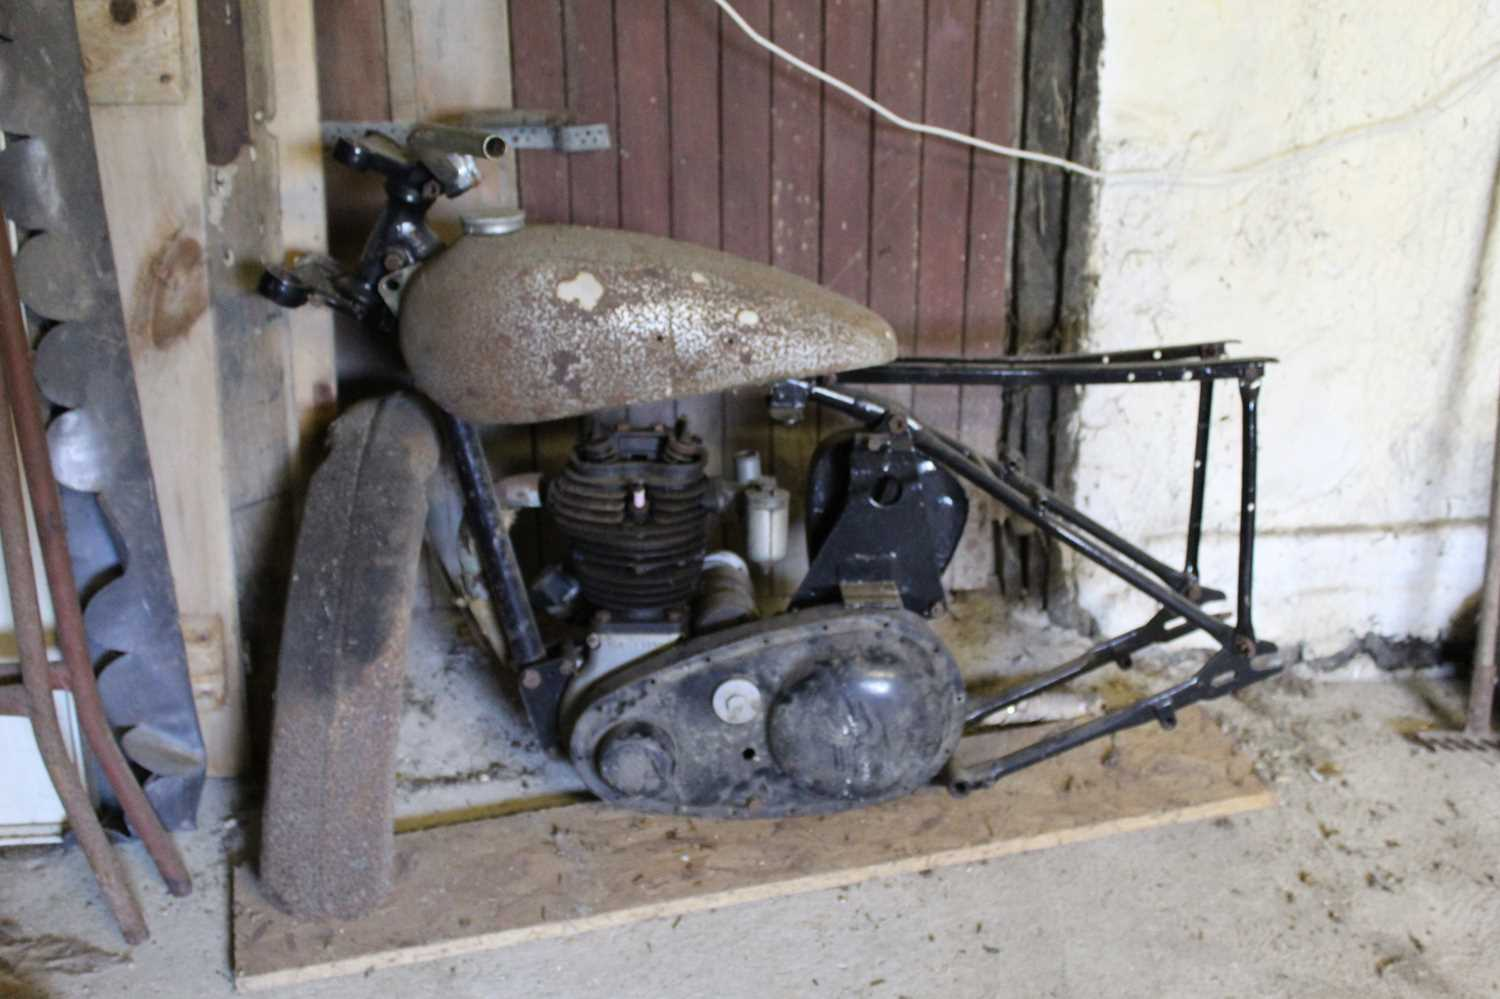 A 1948 BSA C11 project for restoration, engine No. YC11 4331, frame number YC 10/77076 IMPORTANT